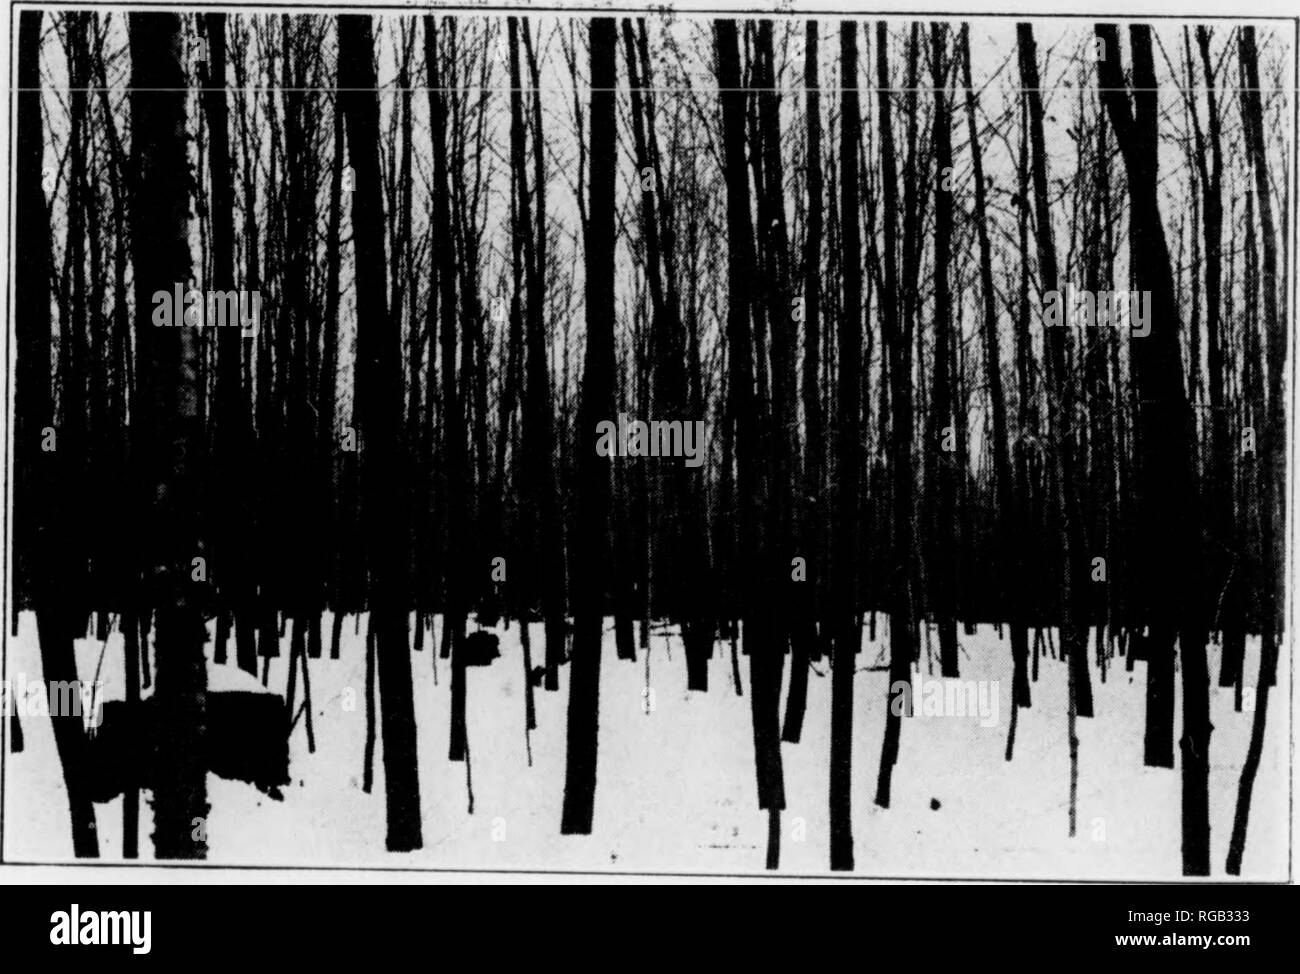 . Bulletin (Pennsylvania Department of Forests and Waters), no. 46-50. Forests and forestry. Fig. 9. A 26-Ycar-Old Mixed Stand of Yellow and Black Birch Averaging 3.4 Inches in Diameter, and 39 Feet in Height. It Contains 1,264 Trees per Acre with a Total Volume of 1,705 Cubic Feet.. Fig. 10 A 30-Year-Old Stand, rrincipally Black Birch, Averaging 3.4 Inches m Dmmeter and 40 Feet in Height. It Contains 1,476 Trees per Acre with a Total 1 olumc of 12,223 Cubic Feet. i ^^i^ The Beecii-Bikcii-Maple Forest Type in Pennsylvania 21. Please note that these images are extracted from scanned page images - Stock Image